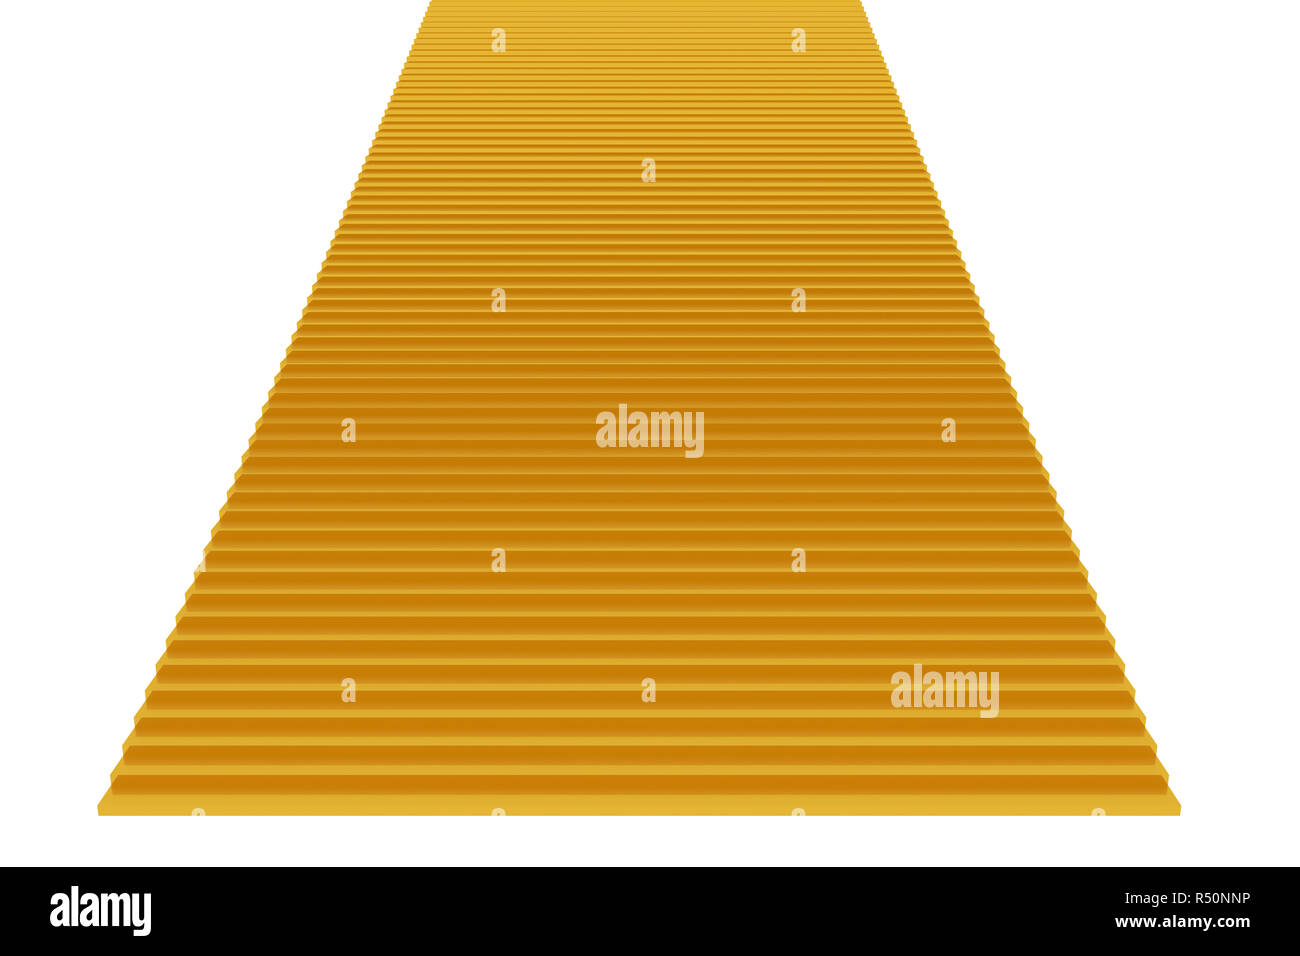 Golden ladder. Background abstract for graphic resource. - Stock Image